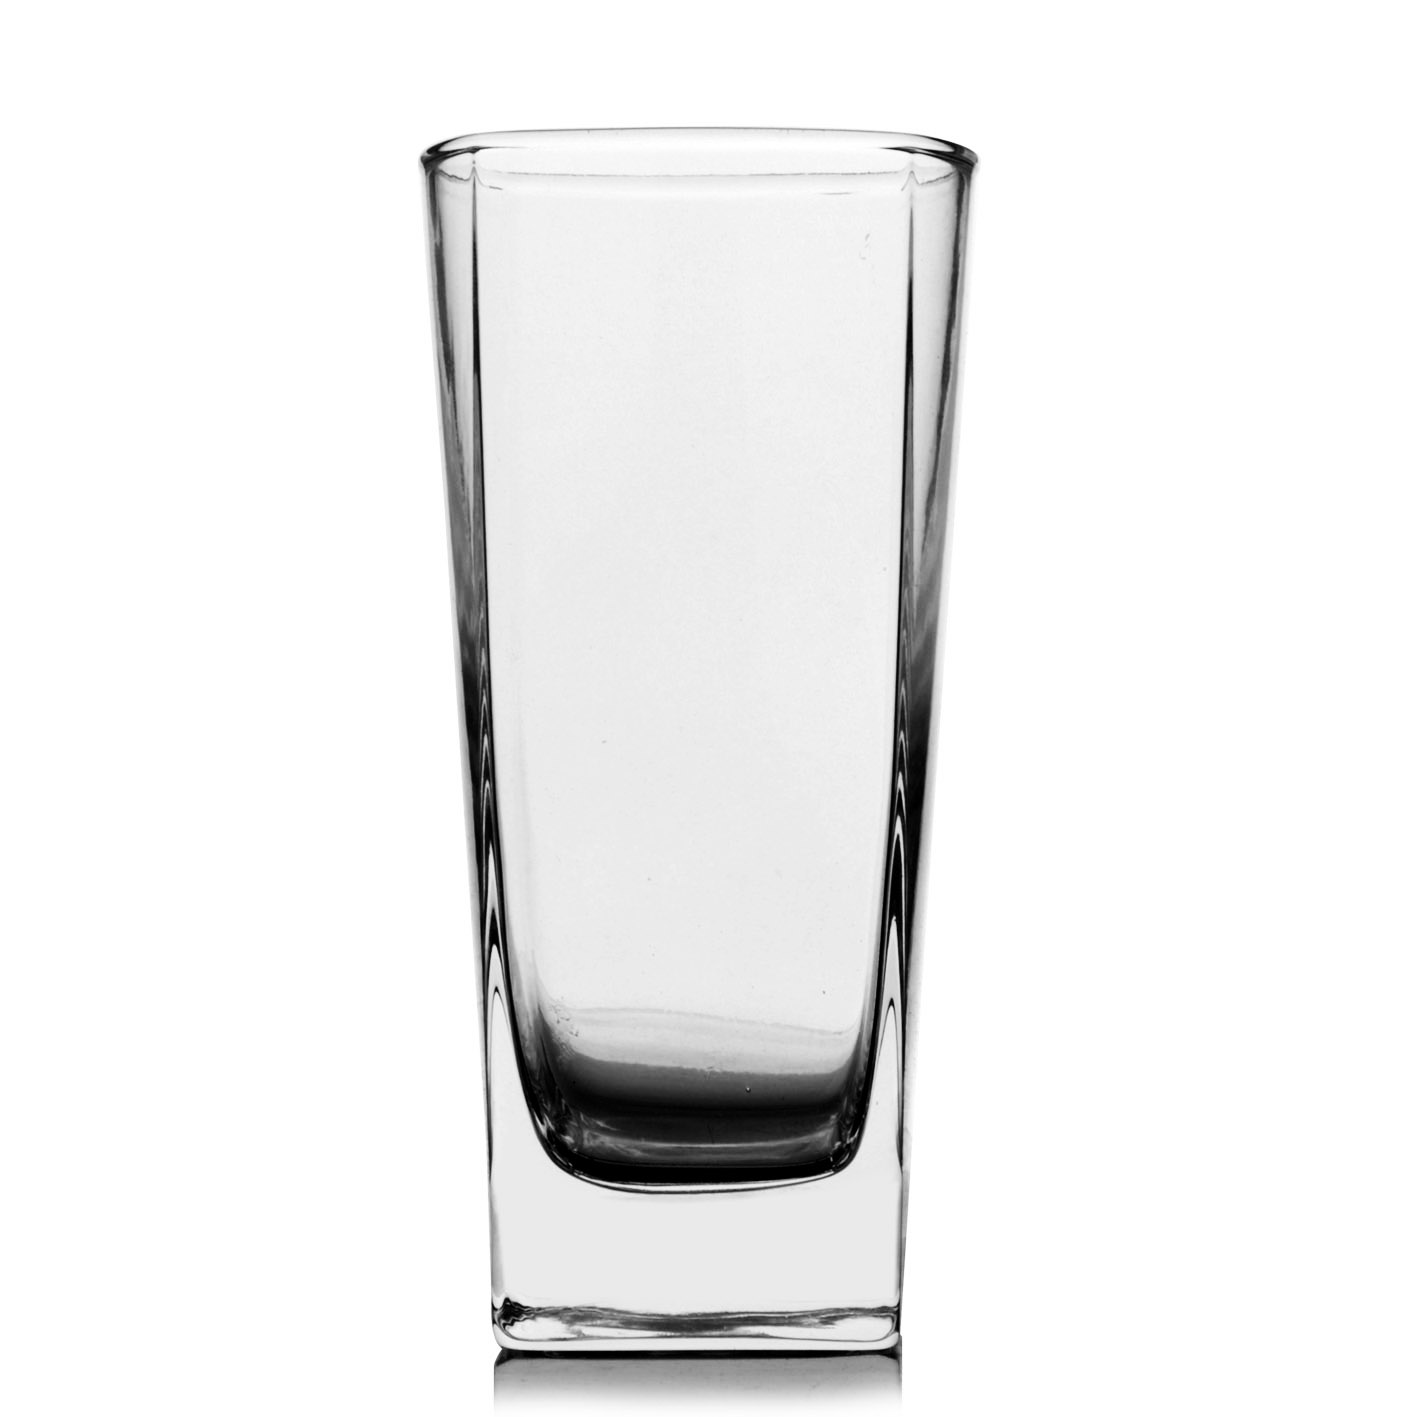 Creative exquisite 300ML quartet transparent glass cup cup cup cup milk creative juice cup glass cups